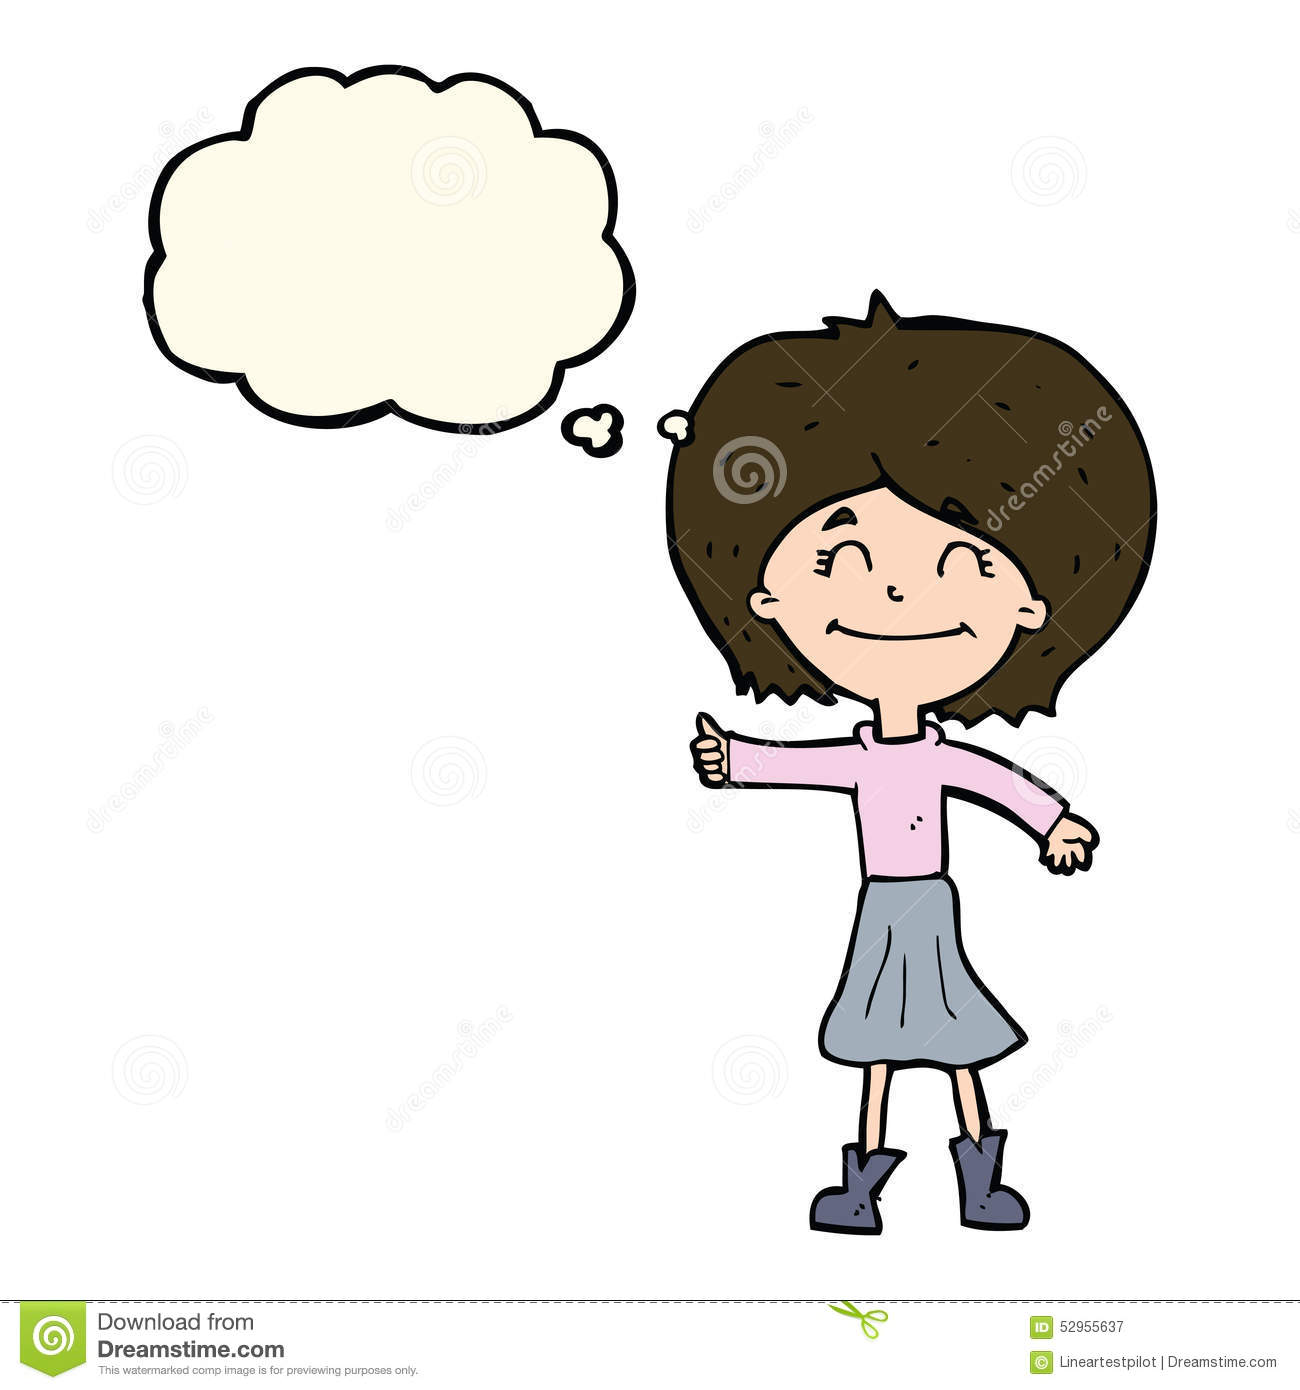 Girl giving thumbs up clipart graphic stock Cartoon Happy Girl Giving Thumbs Up Symbol With Thought Bubble ... graphic stock